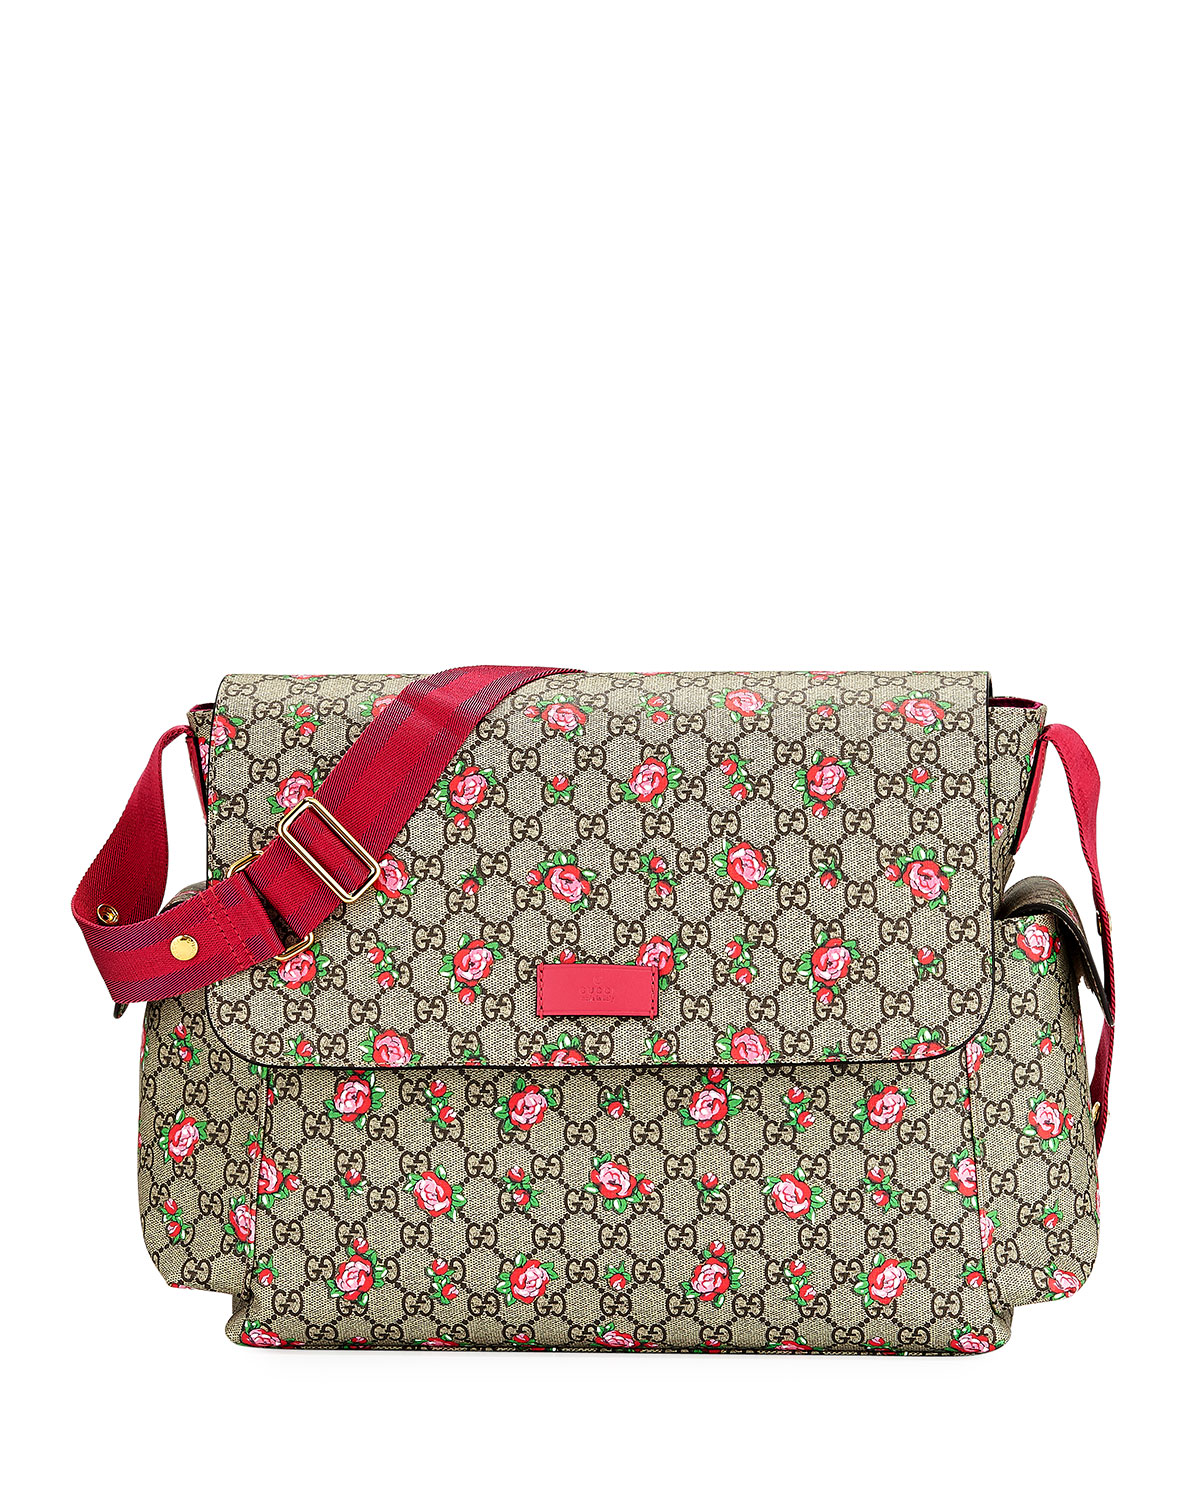 417434e689b86a Gucci GG Supreme Canvas Rosebud Diaper Bag w/ Changing Pad | Neiman ...